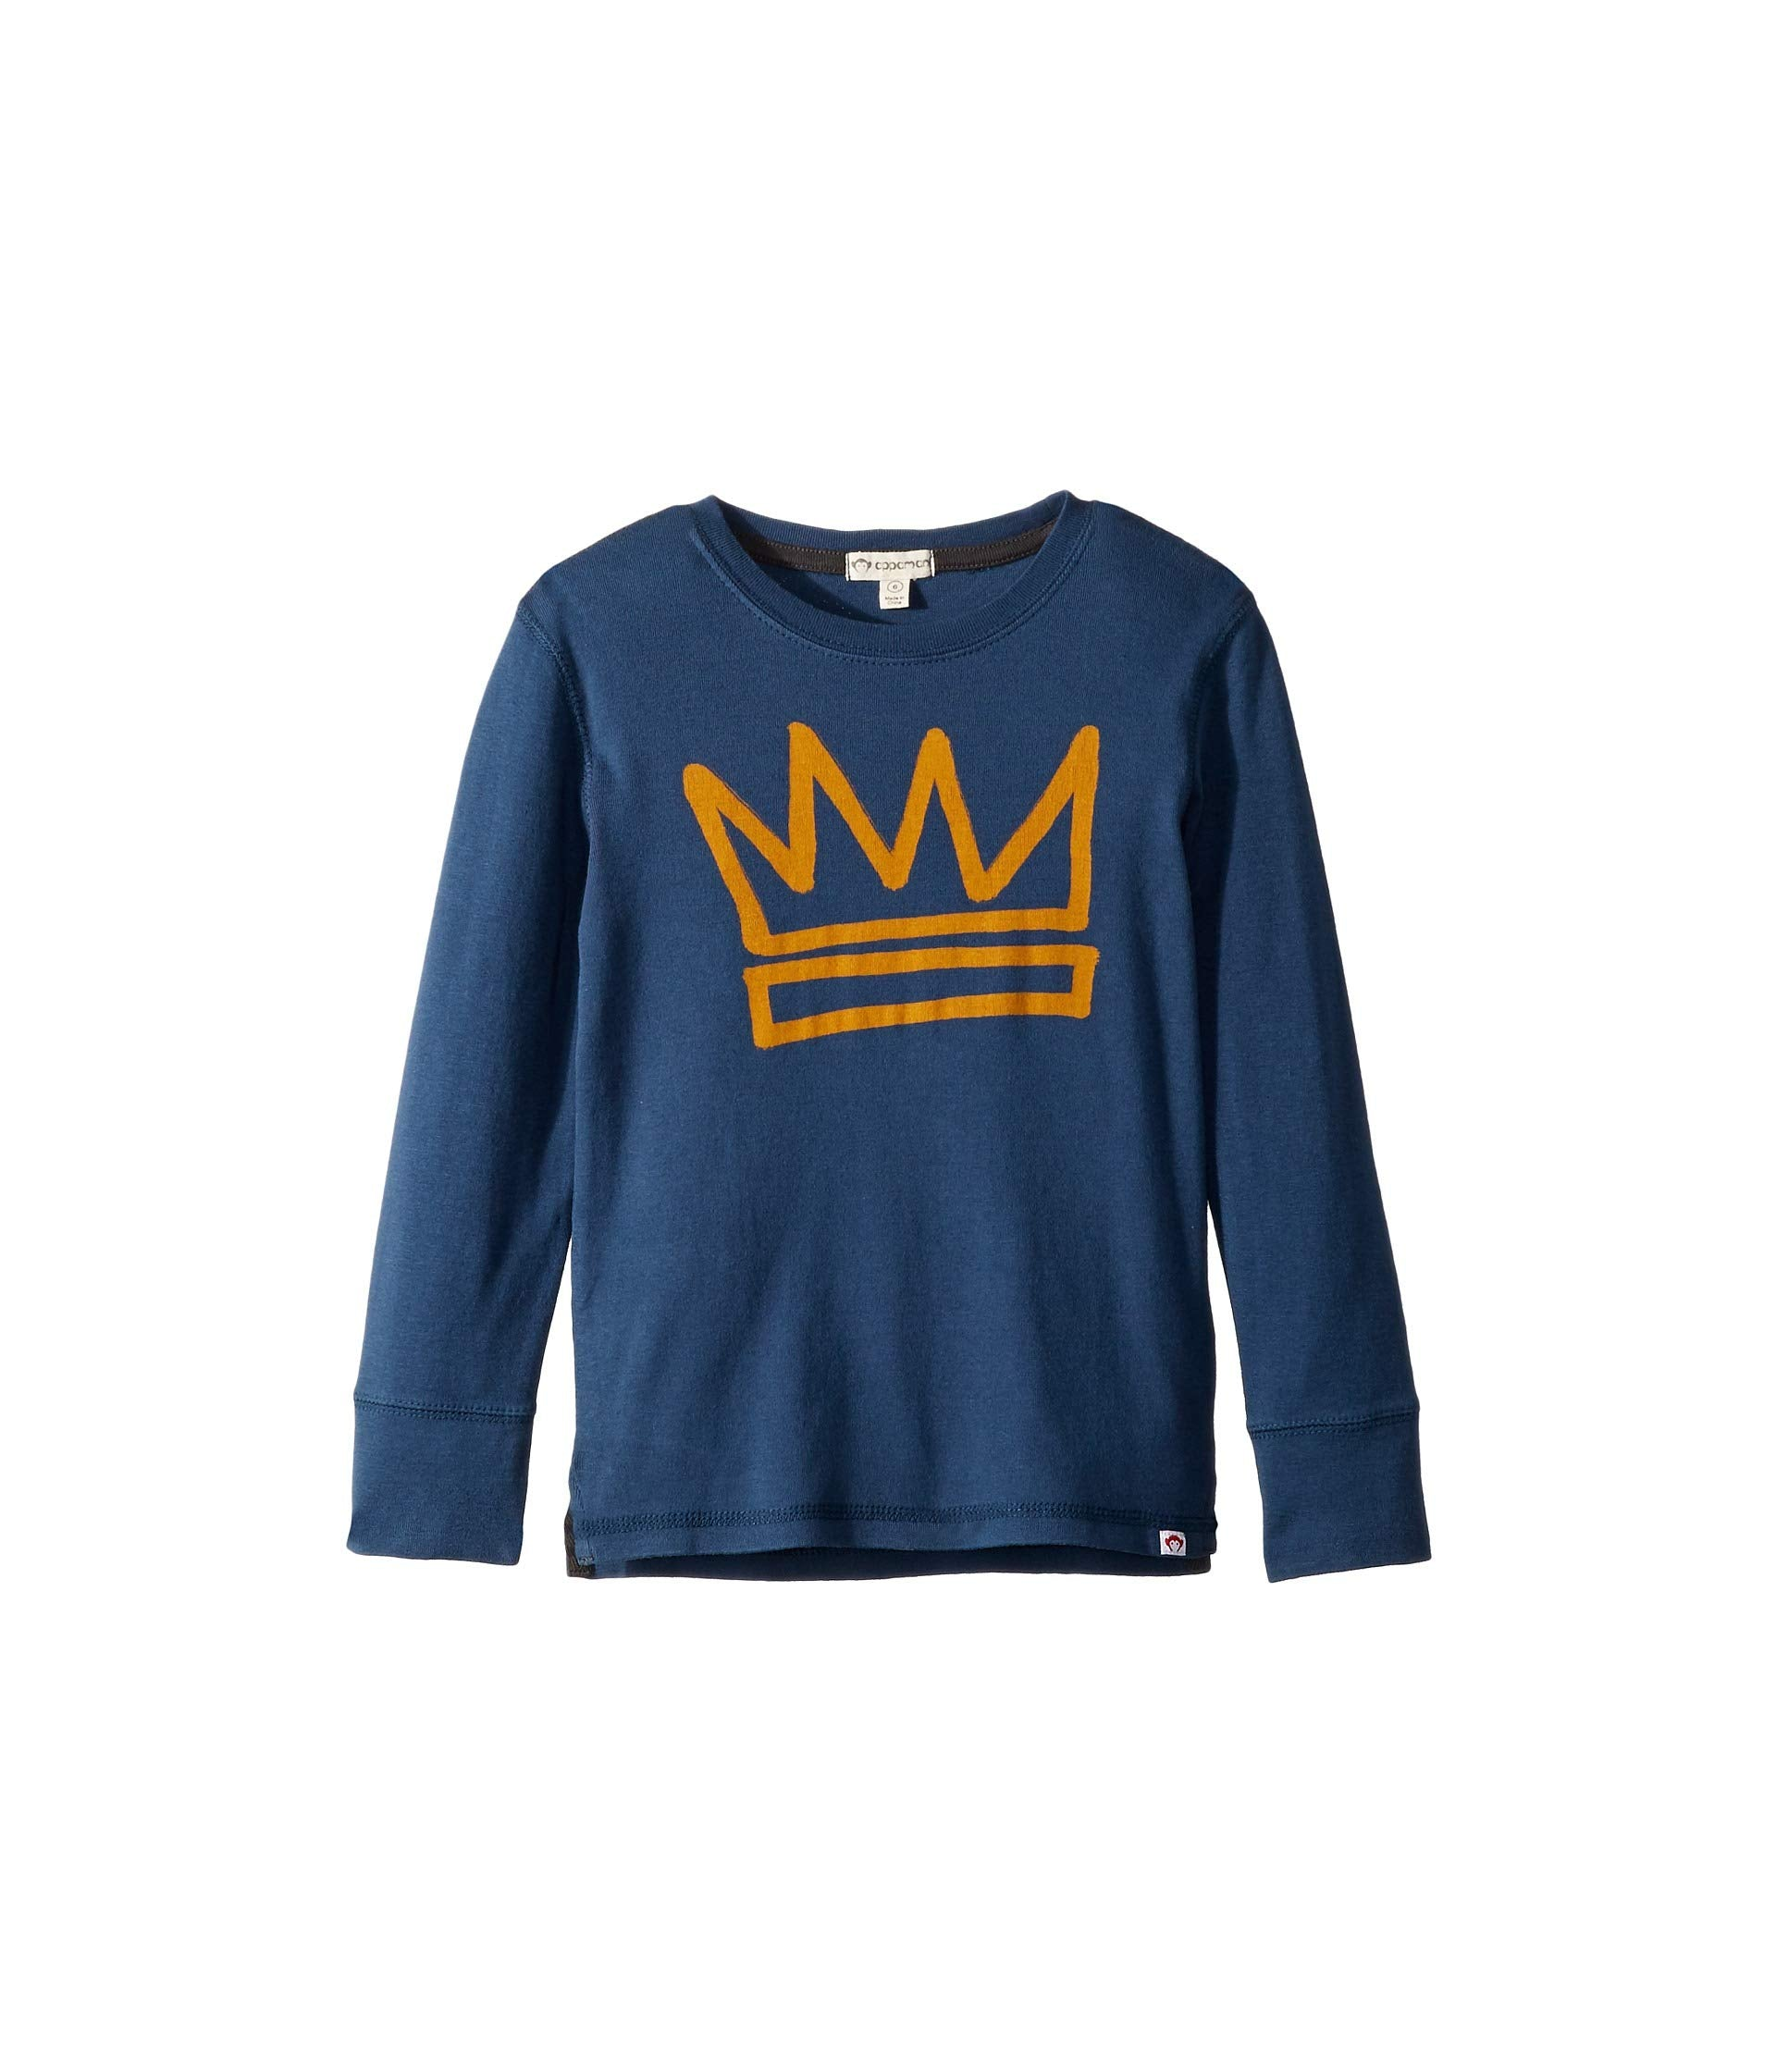 King Graphic Tee | Unique Finds for Kids